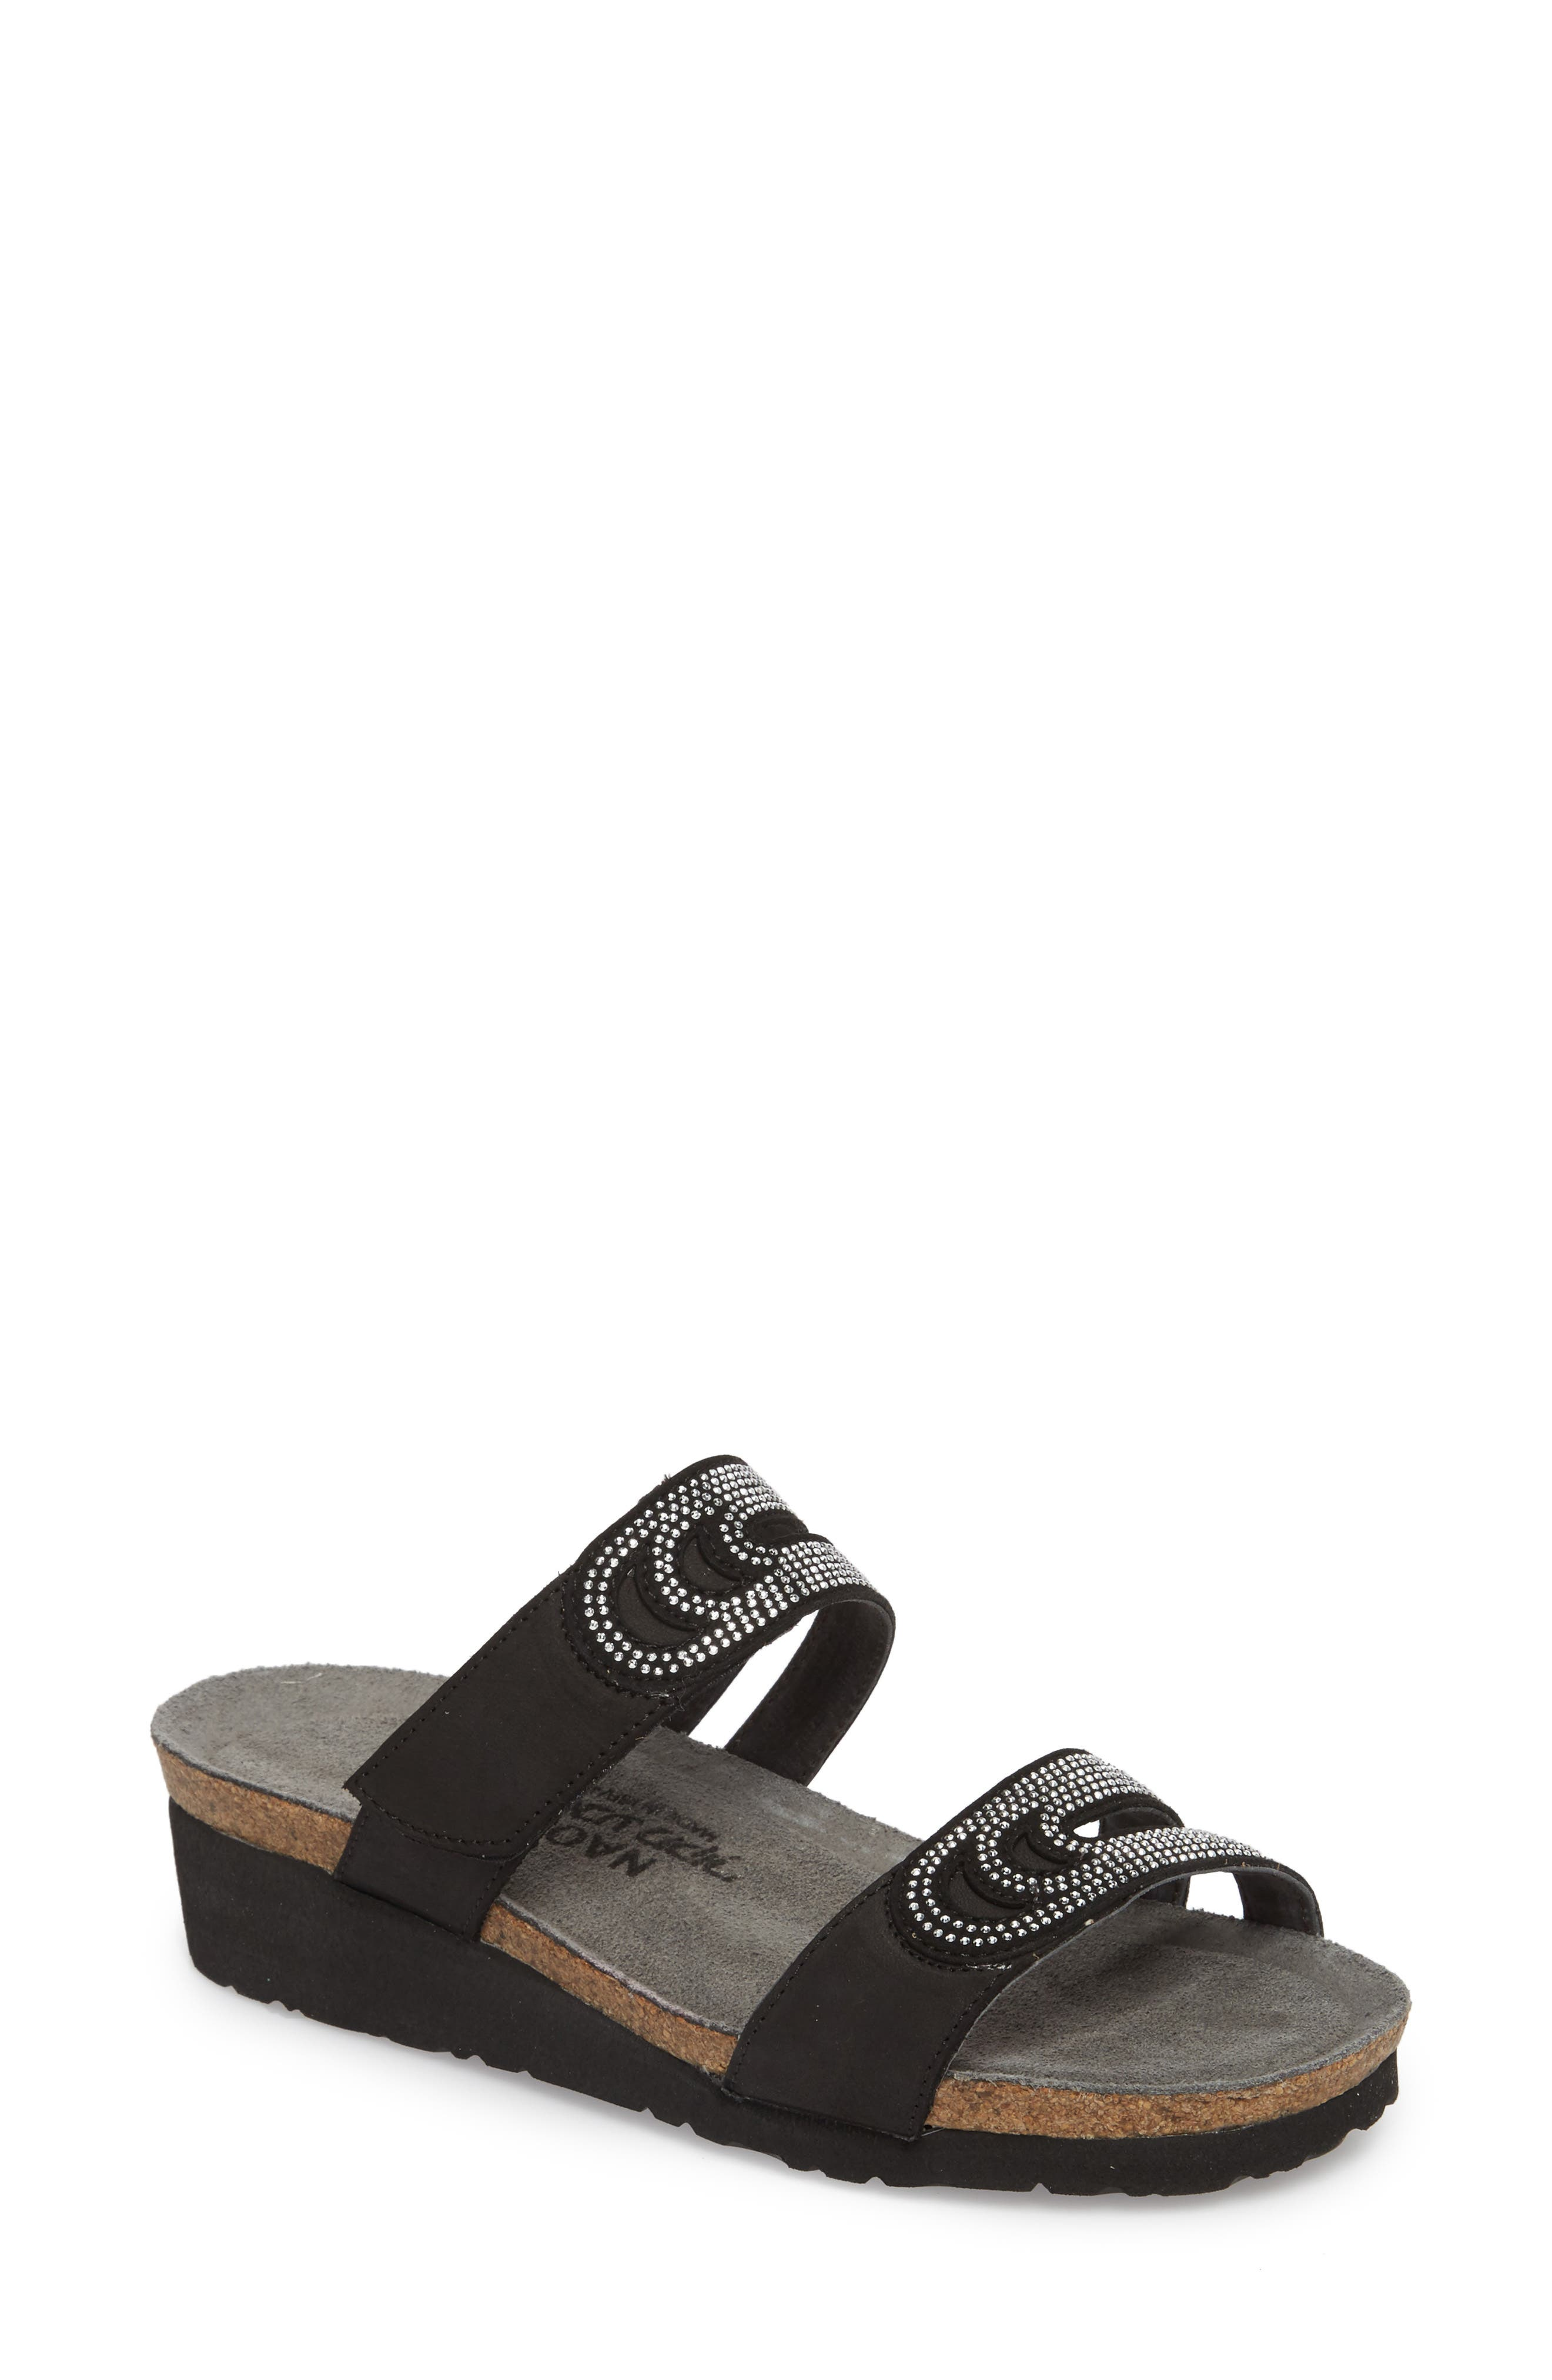 NAOT, Ainsley Studded Slide Sandal, Main thumbnail 1, color, BLACK NUBUCK